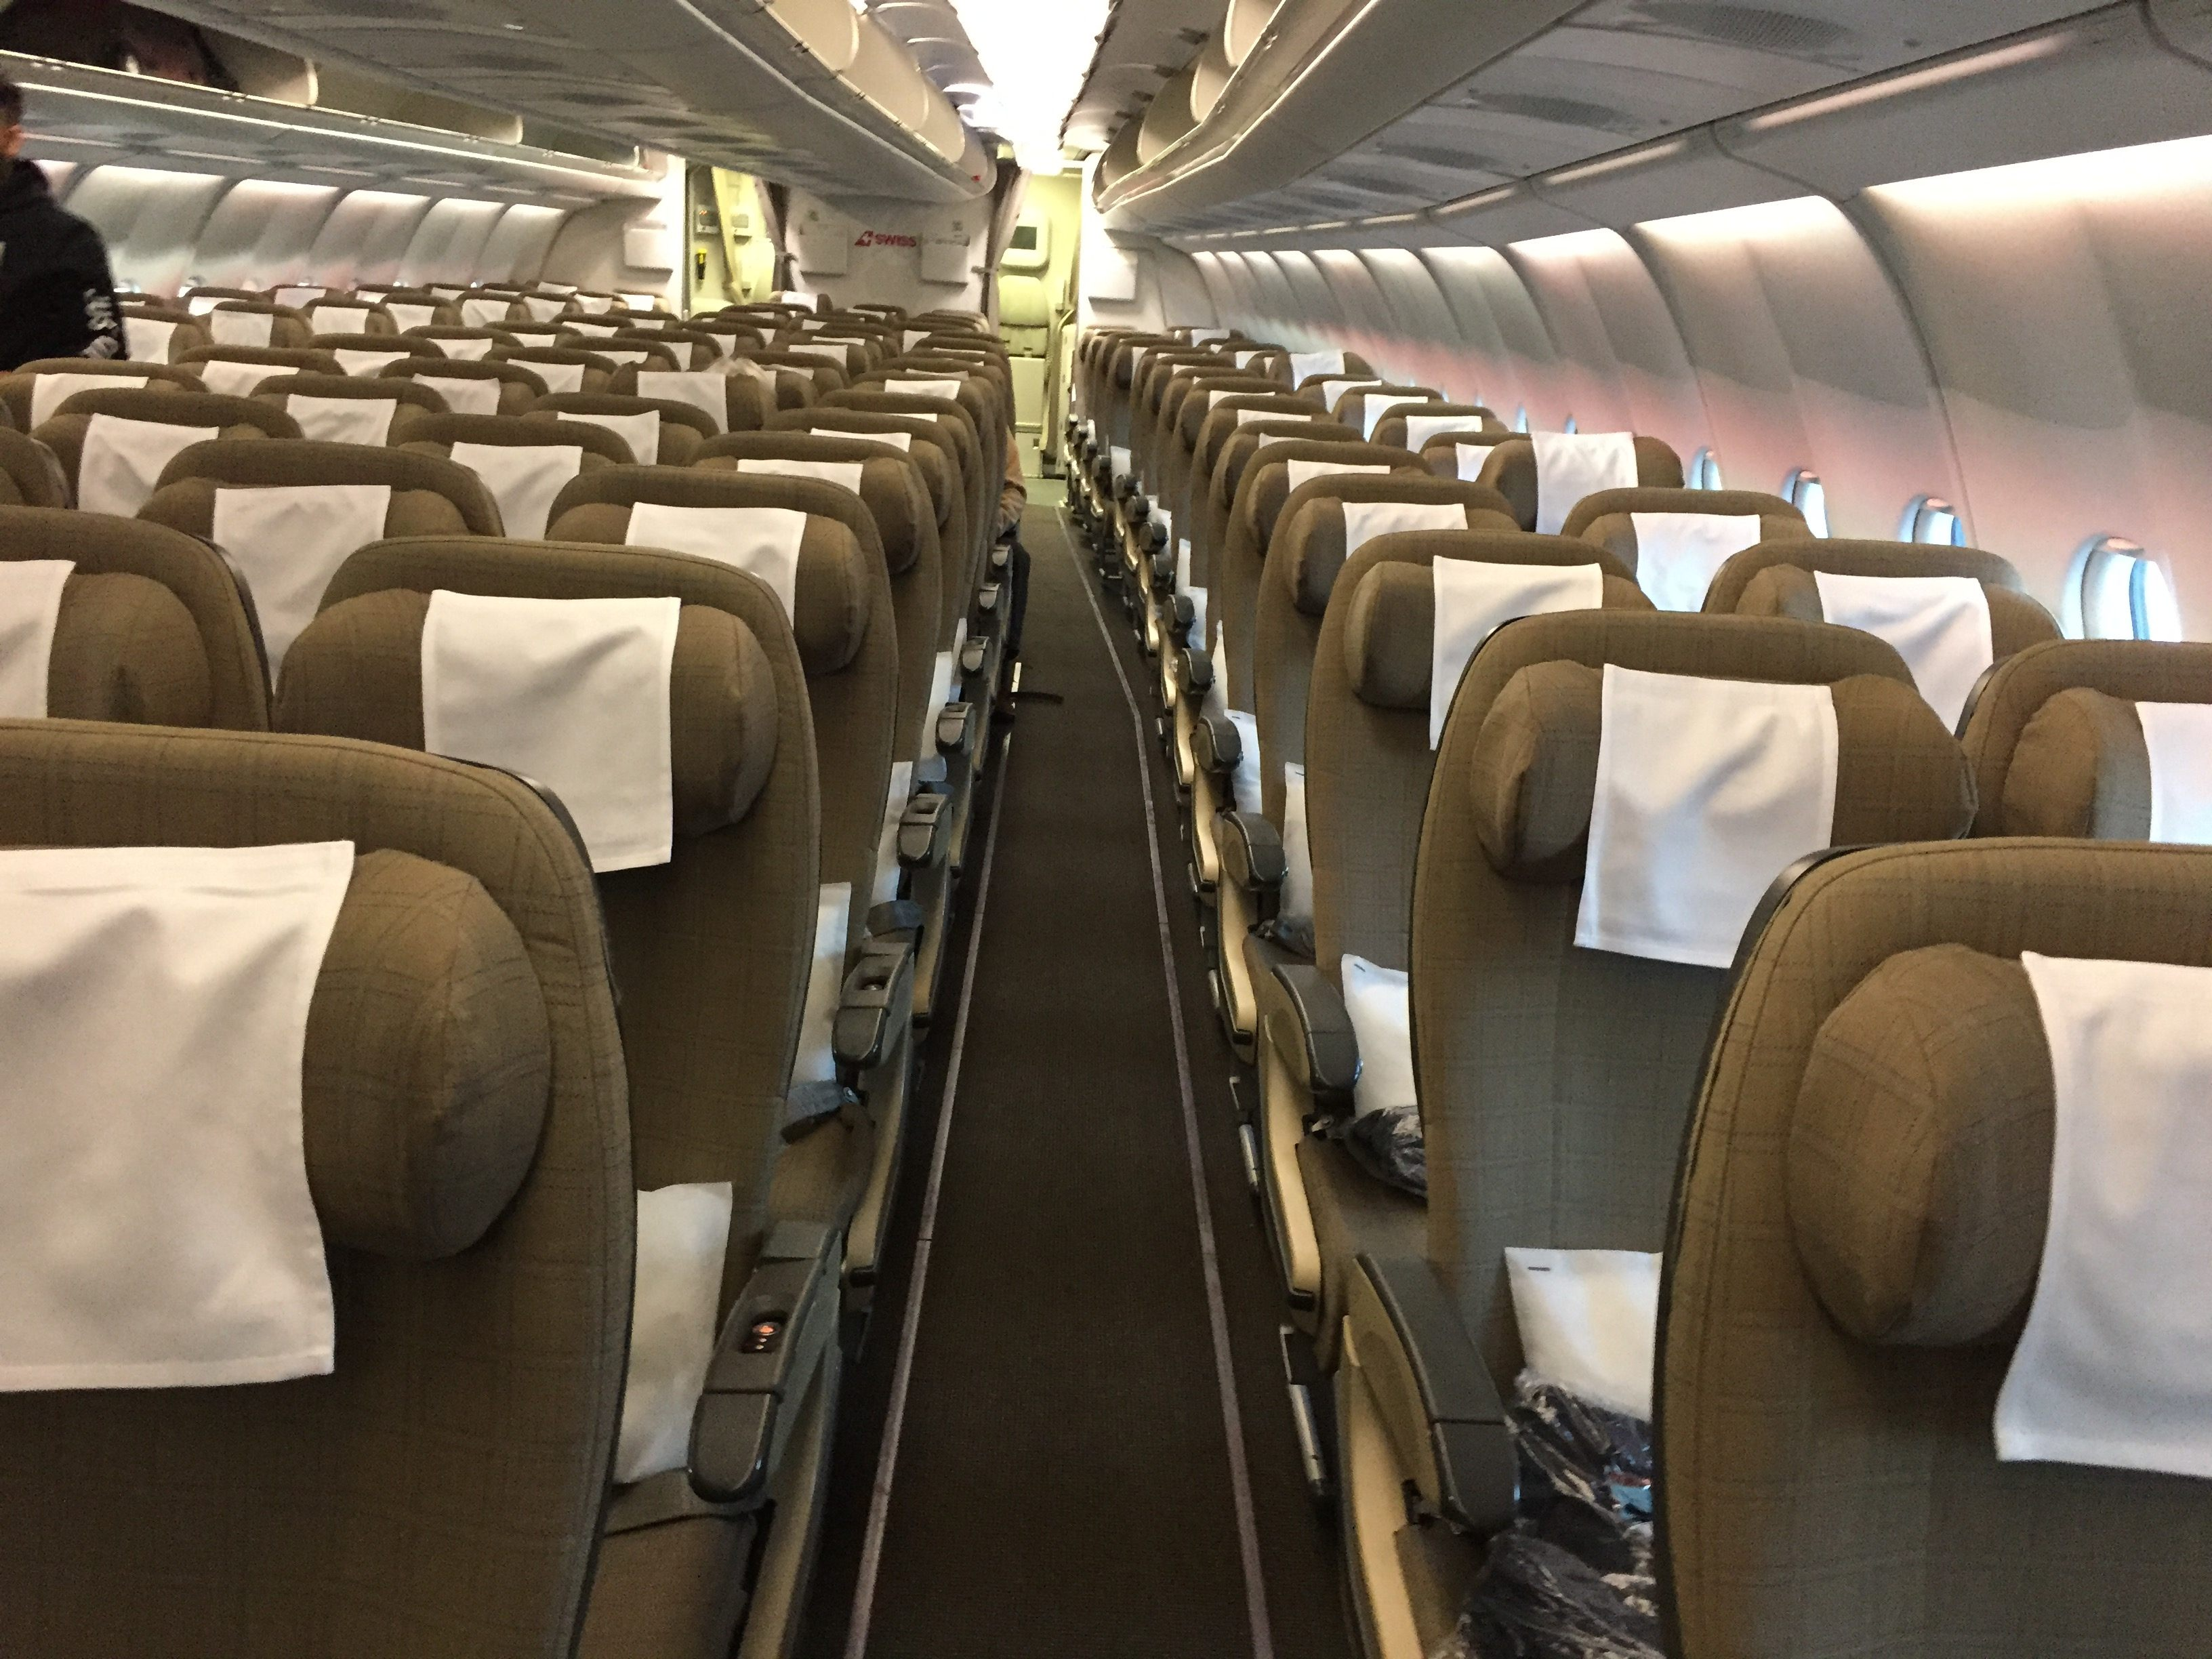 Swiss airlines Economy cabin